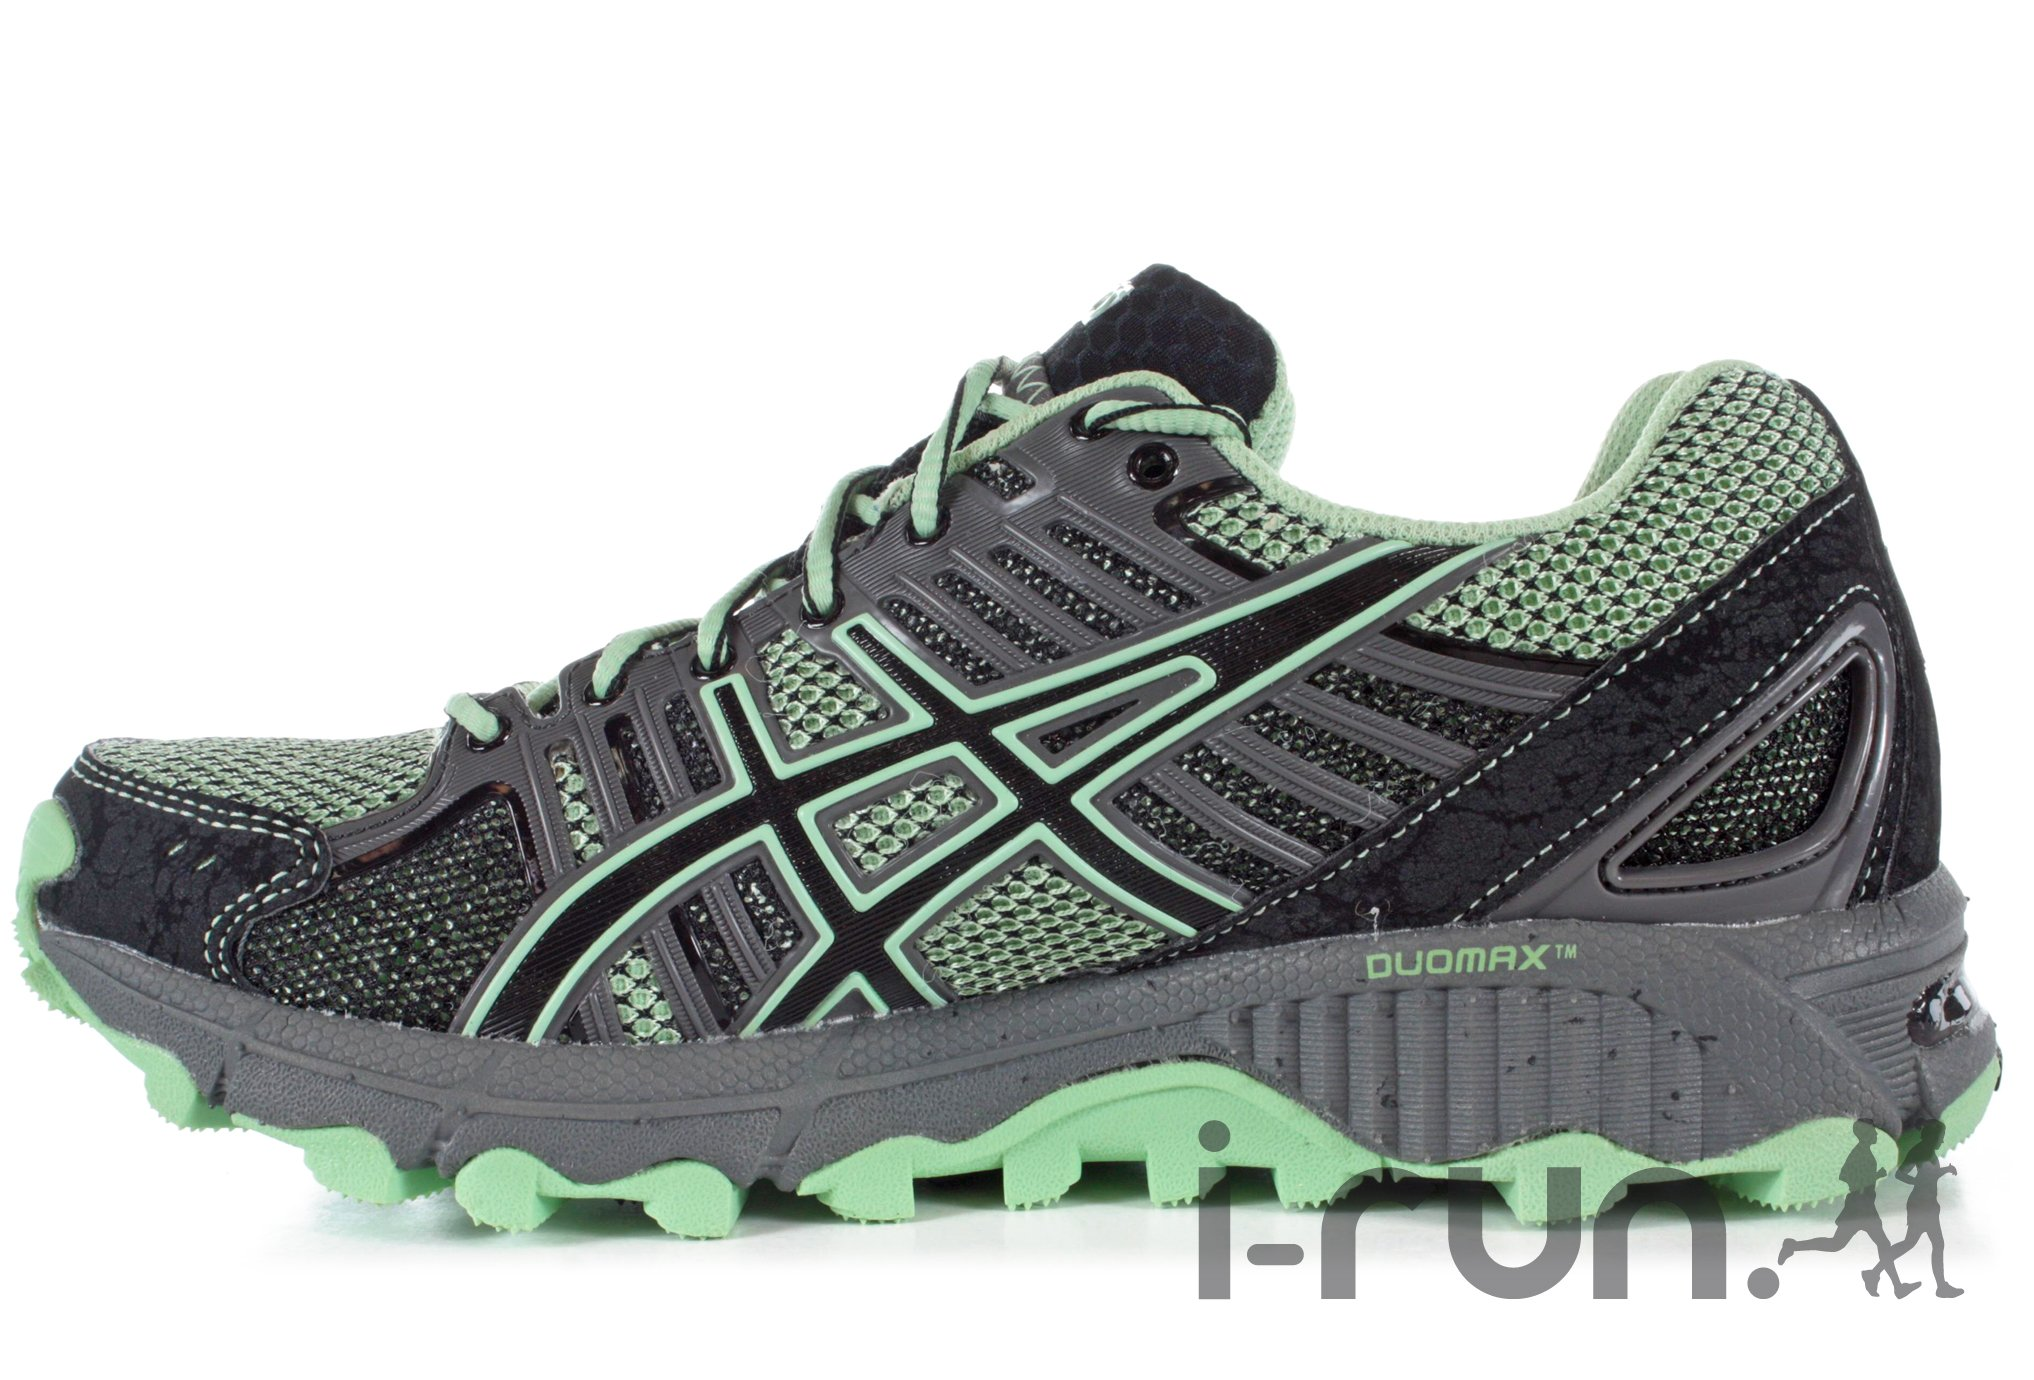 Chaussures Femme Asics Tex Chaussures Asics Gore hQrdtsC